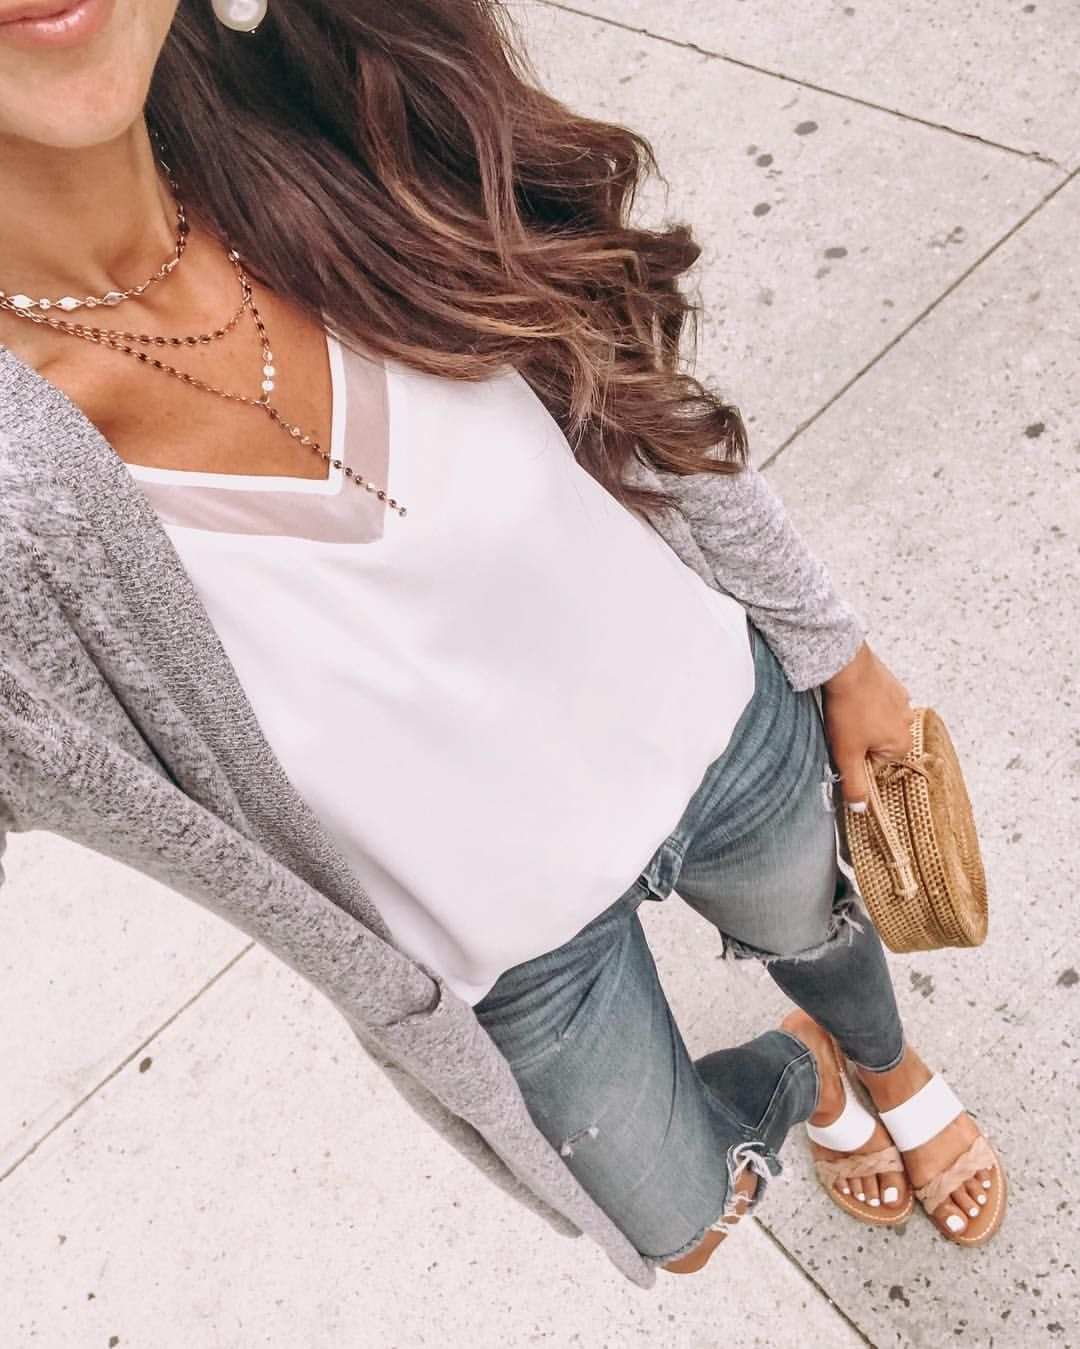 Walking around NYC today... catch my stories to see my friends shopping  dilemma ♀️btw my cami is back in stock and my cardi is… 2ad8d9ca1e3